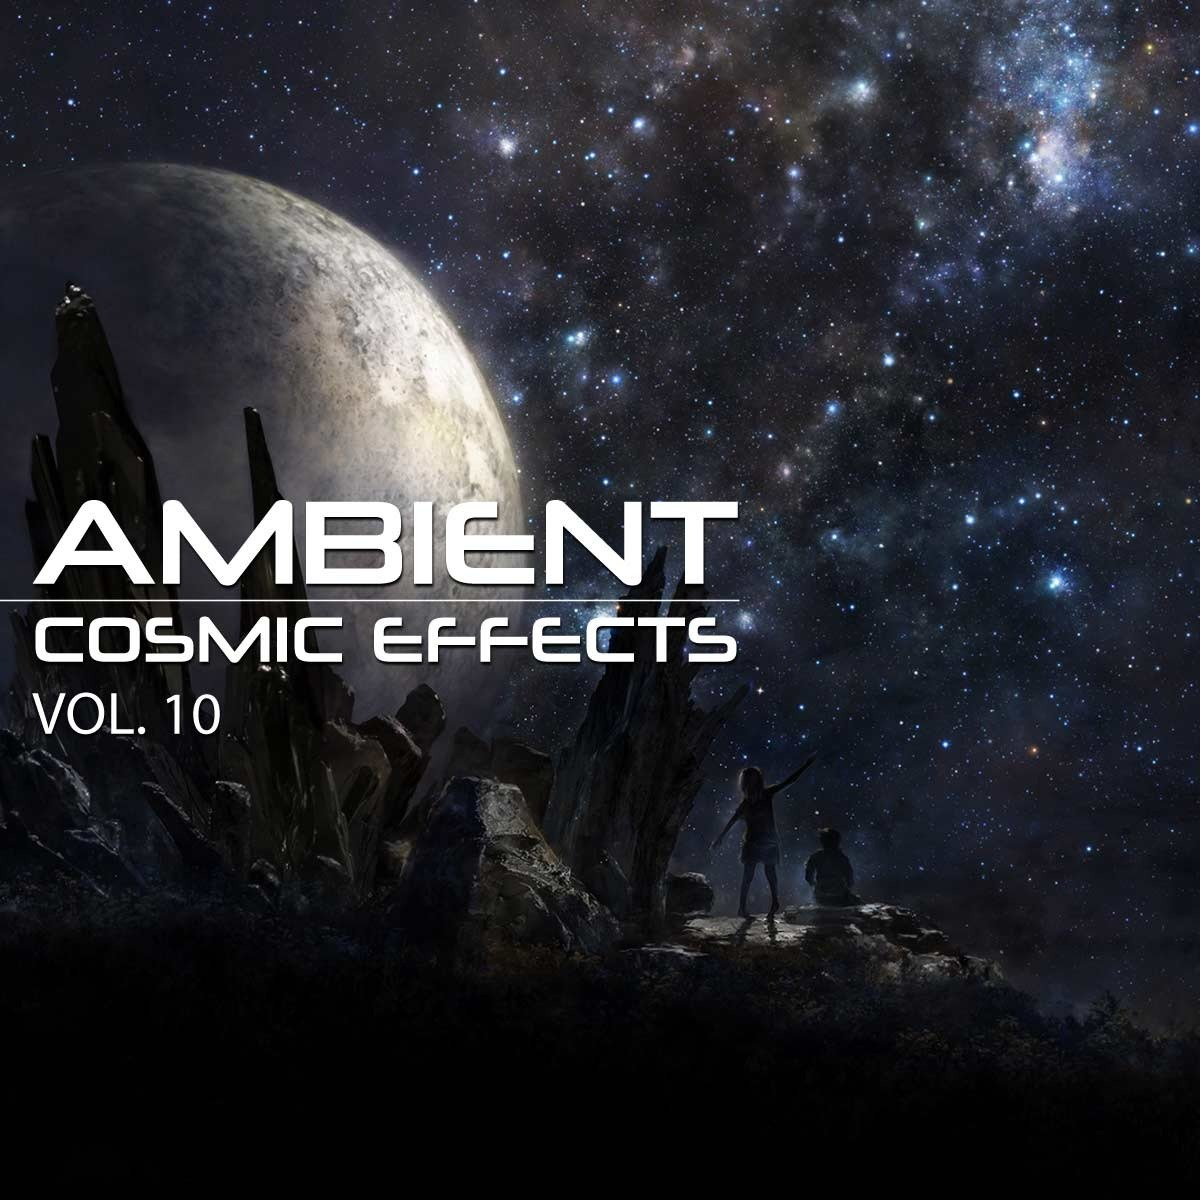 Ambient Cosmic Effects Vol 10